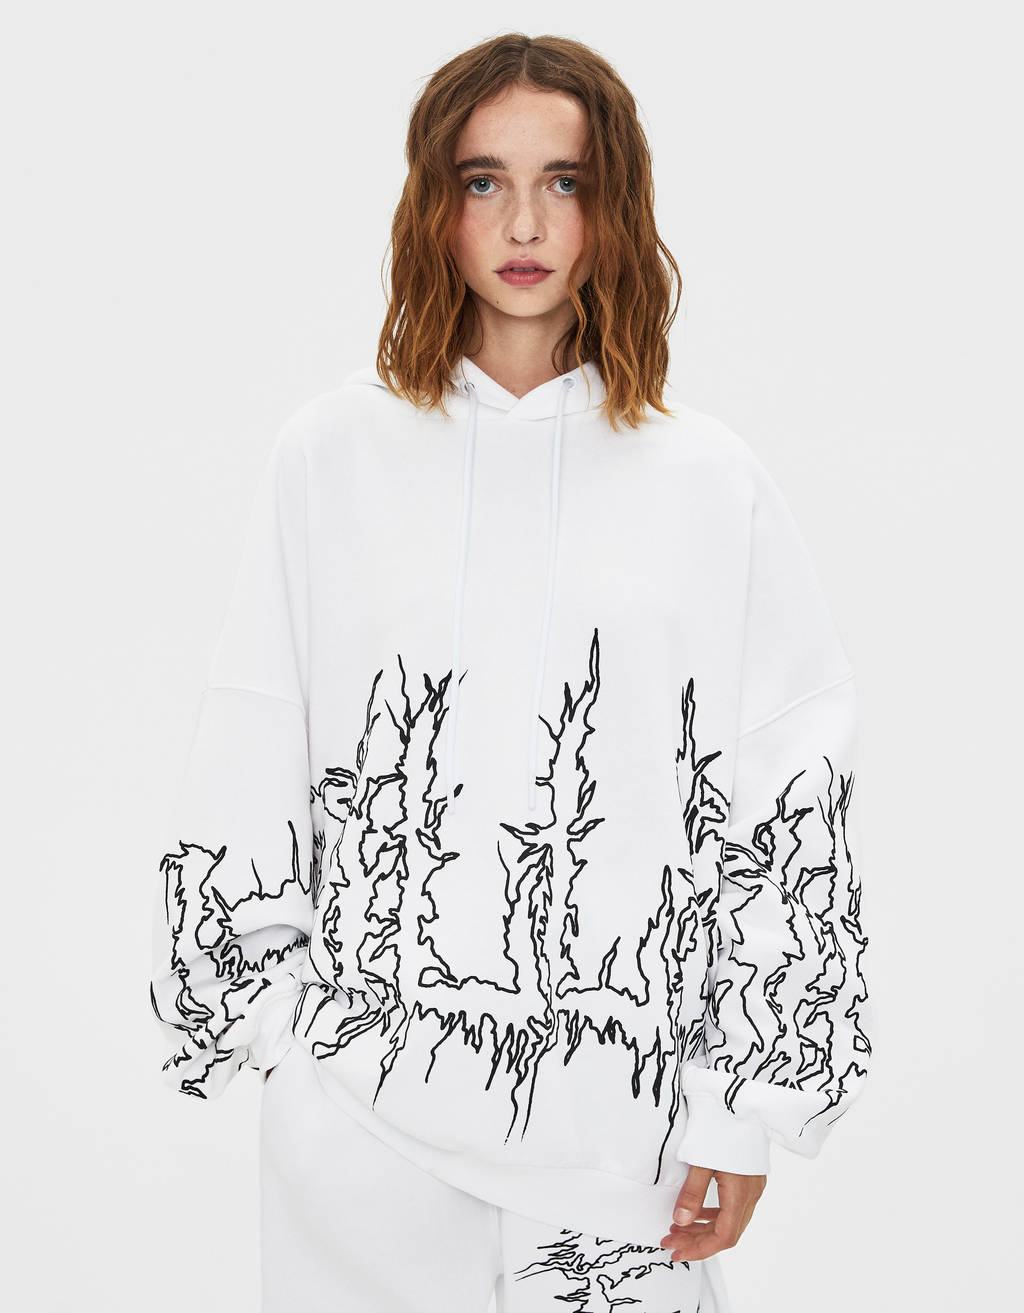 Sweat à capuche Billie Eilish x Bershka